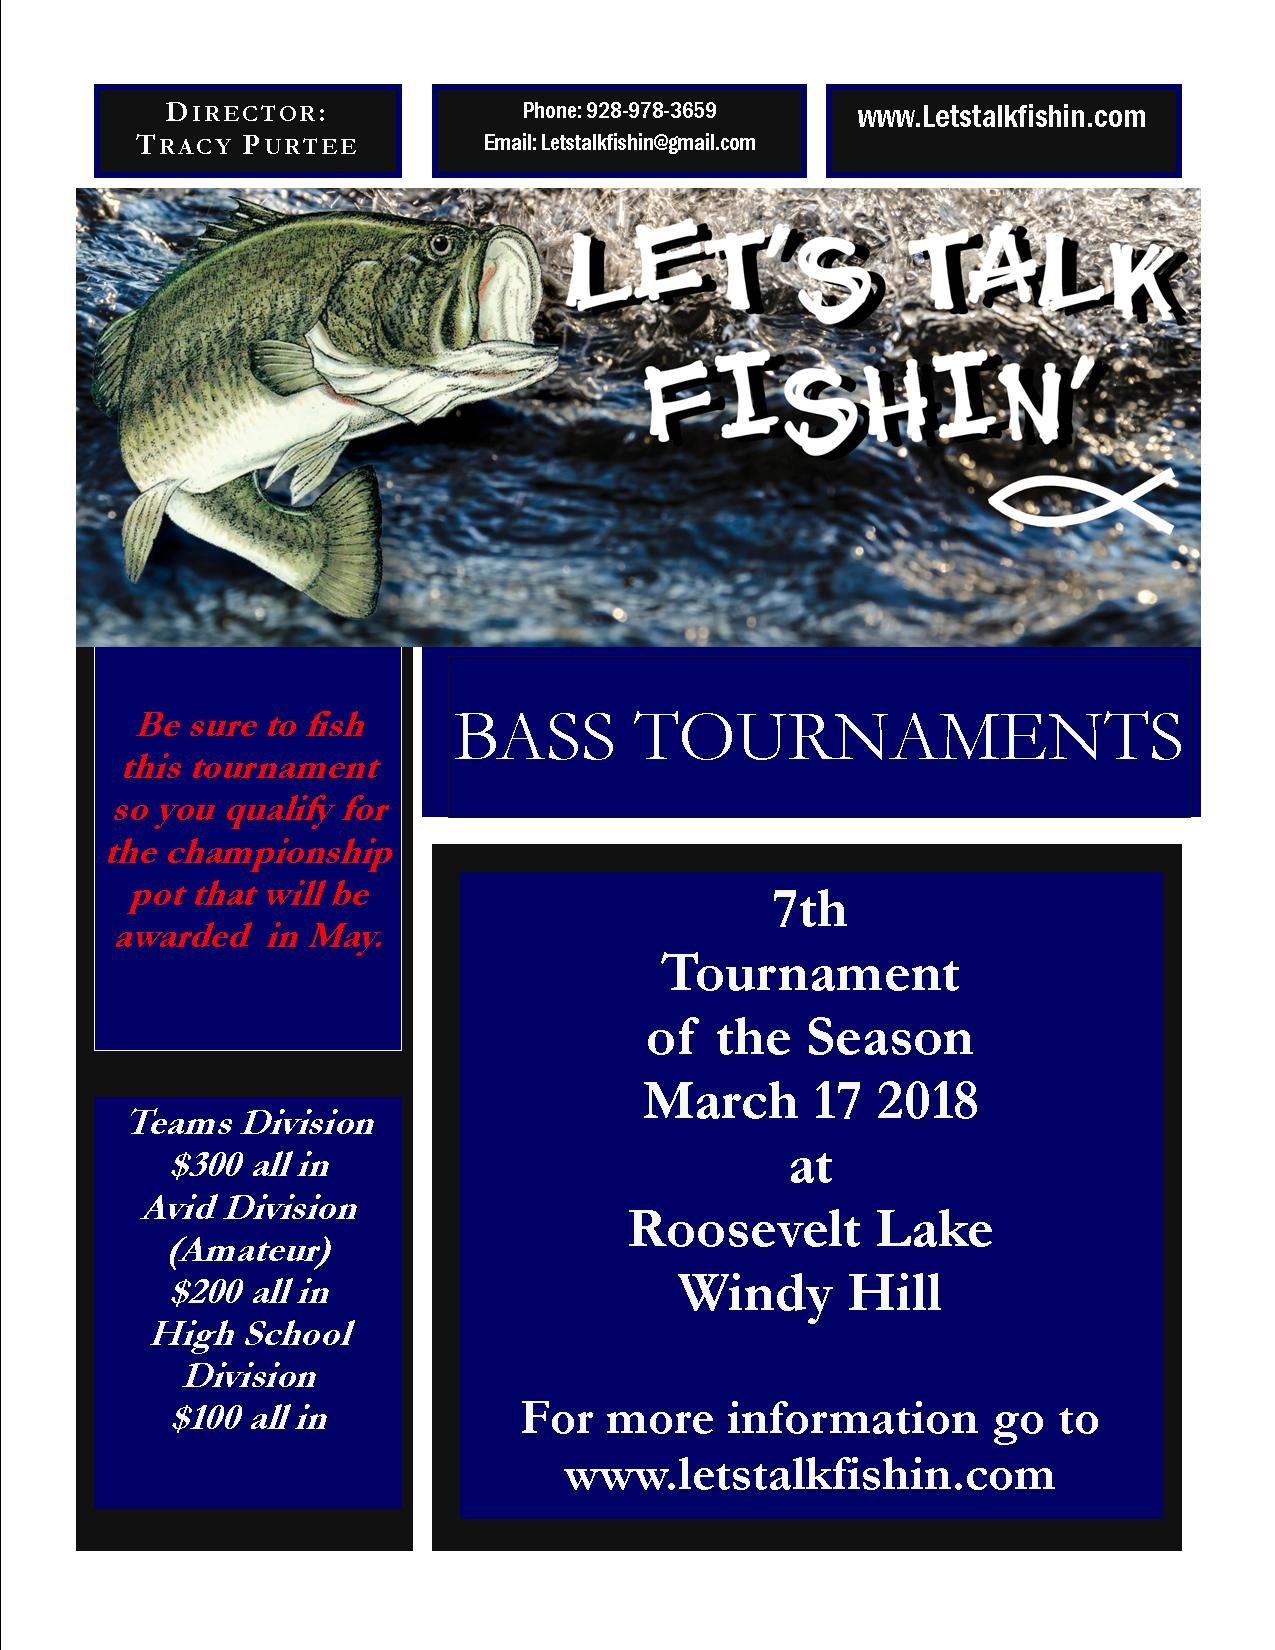 Click image for larger version  Name:7th Tournament.jpg Views:1544 Size:283.6 KB ID:96826